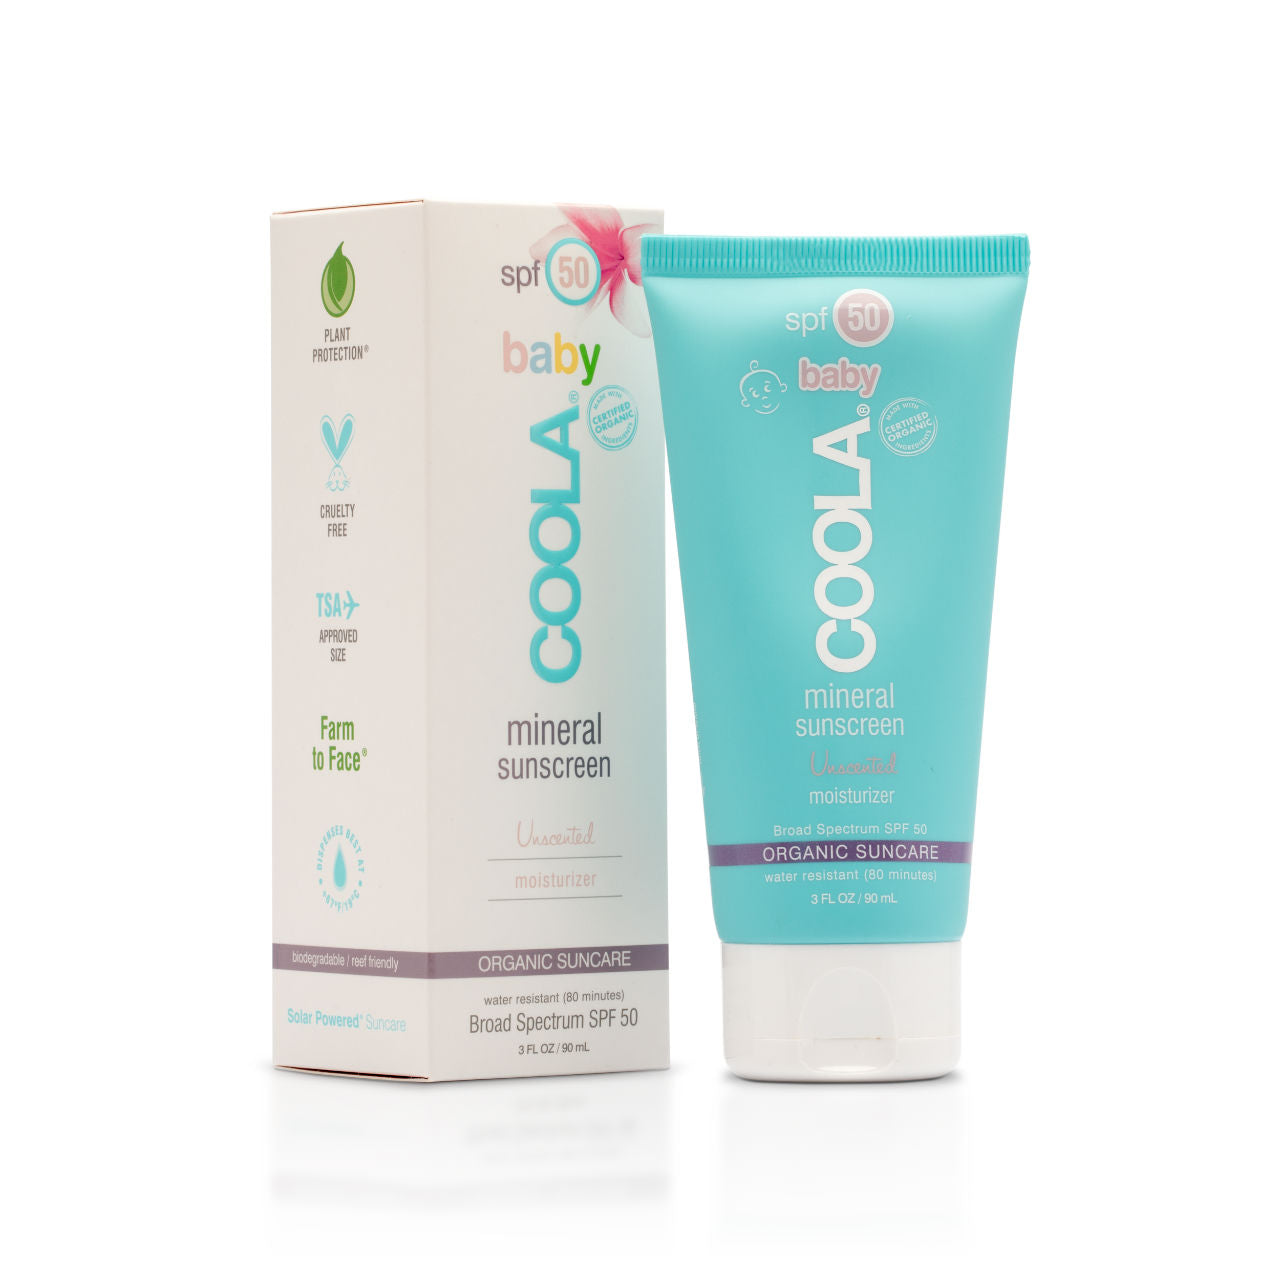 COOLA Mineral Baby SPF50 Unscented Moisturizer